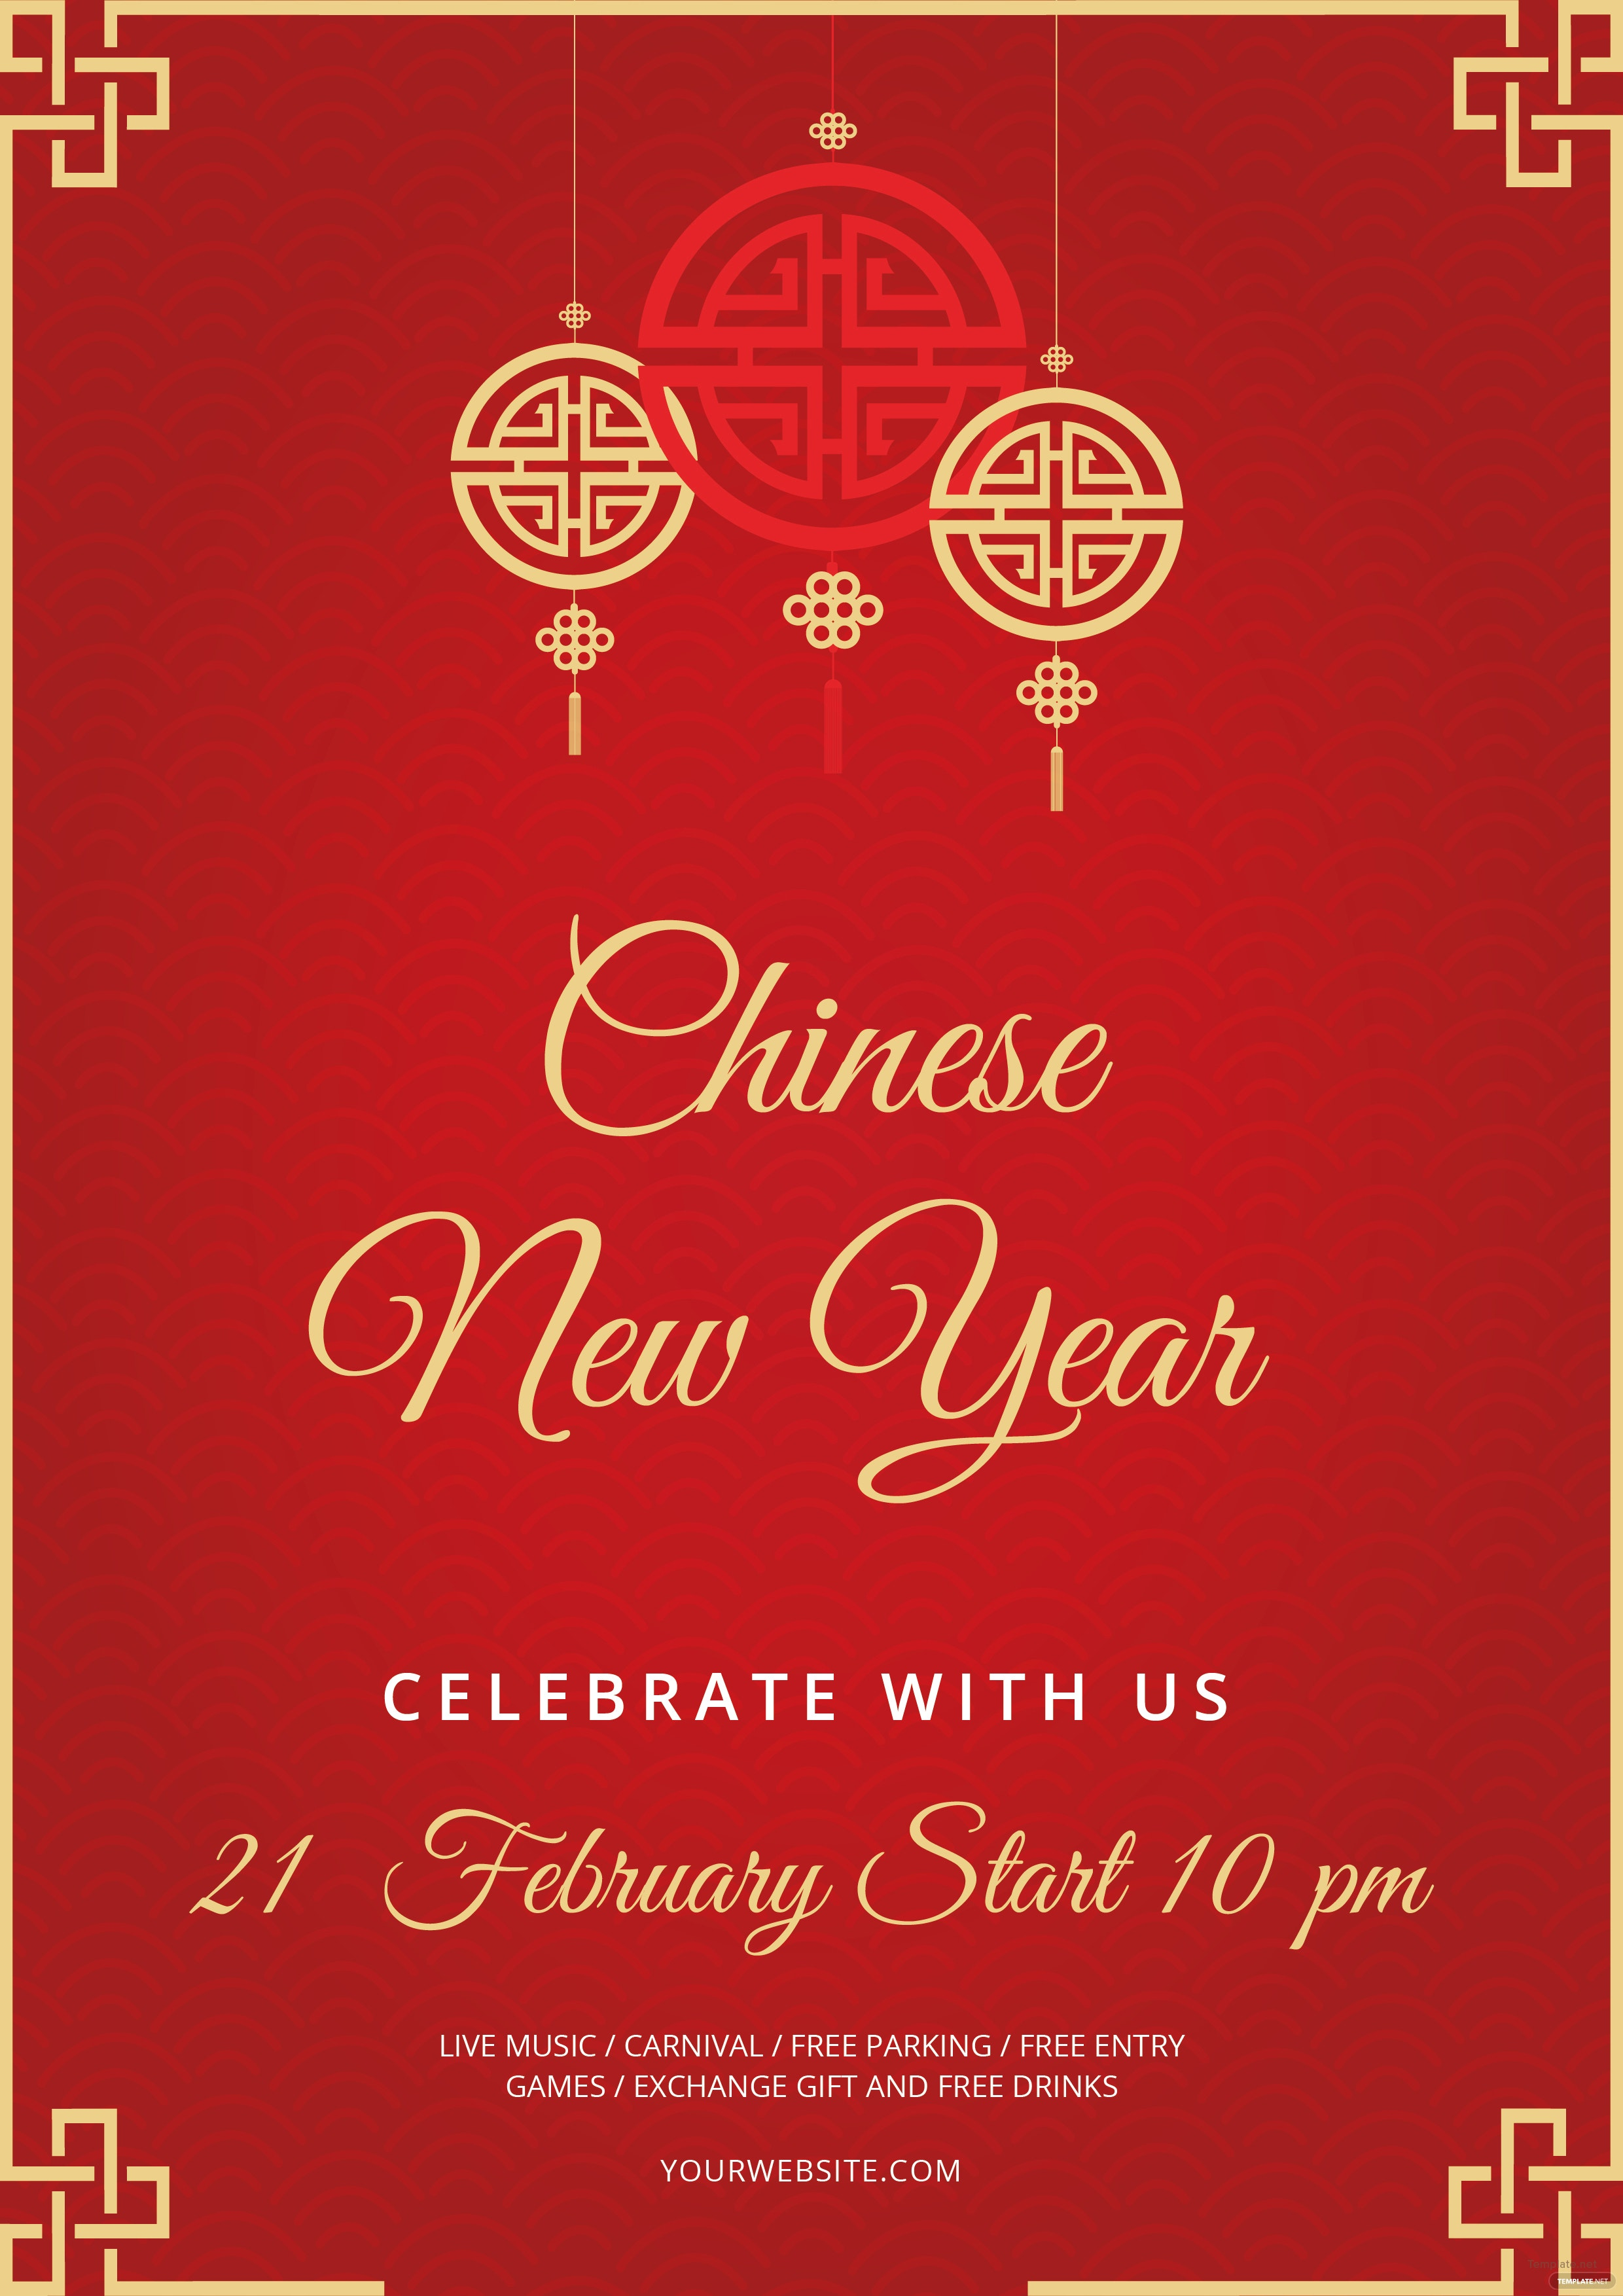 Free chinese new year flyer template in adobe photoshop illustrator chinese new year flyer template free download saigontimesfo